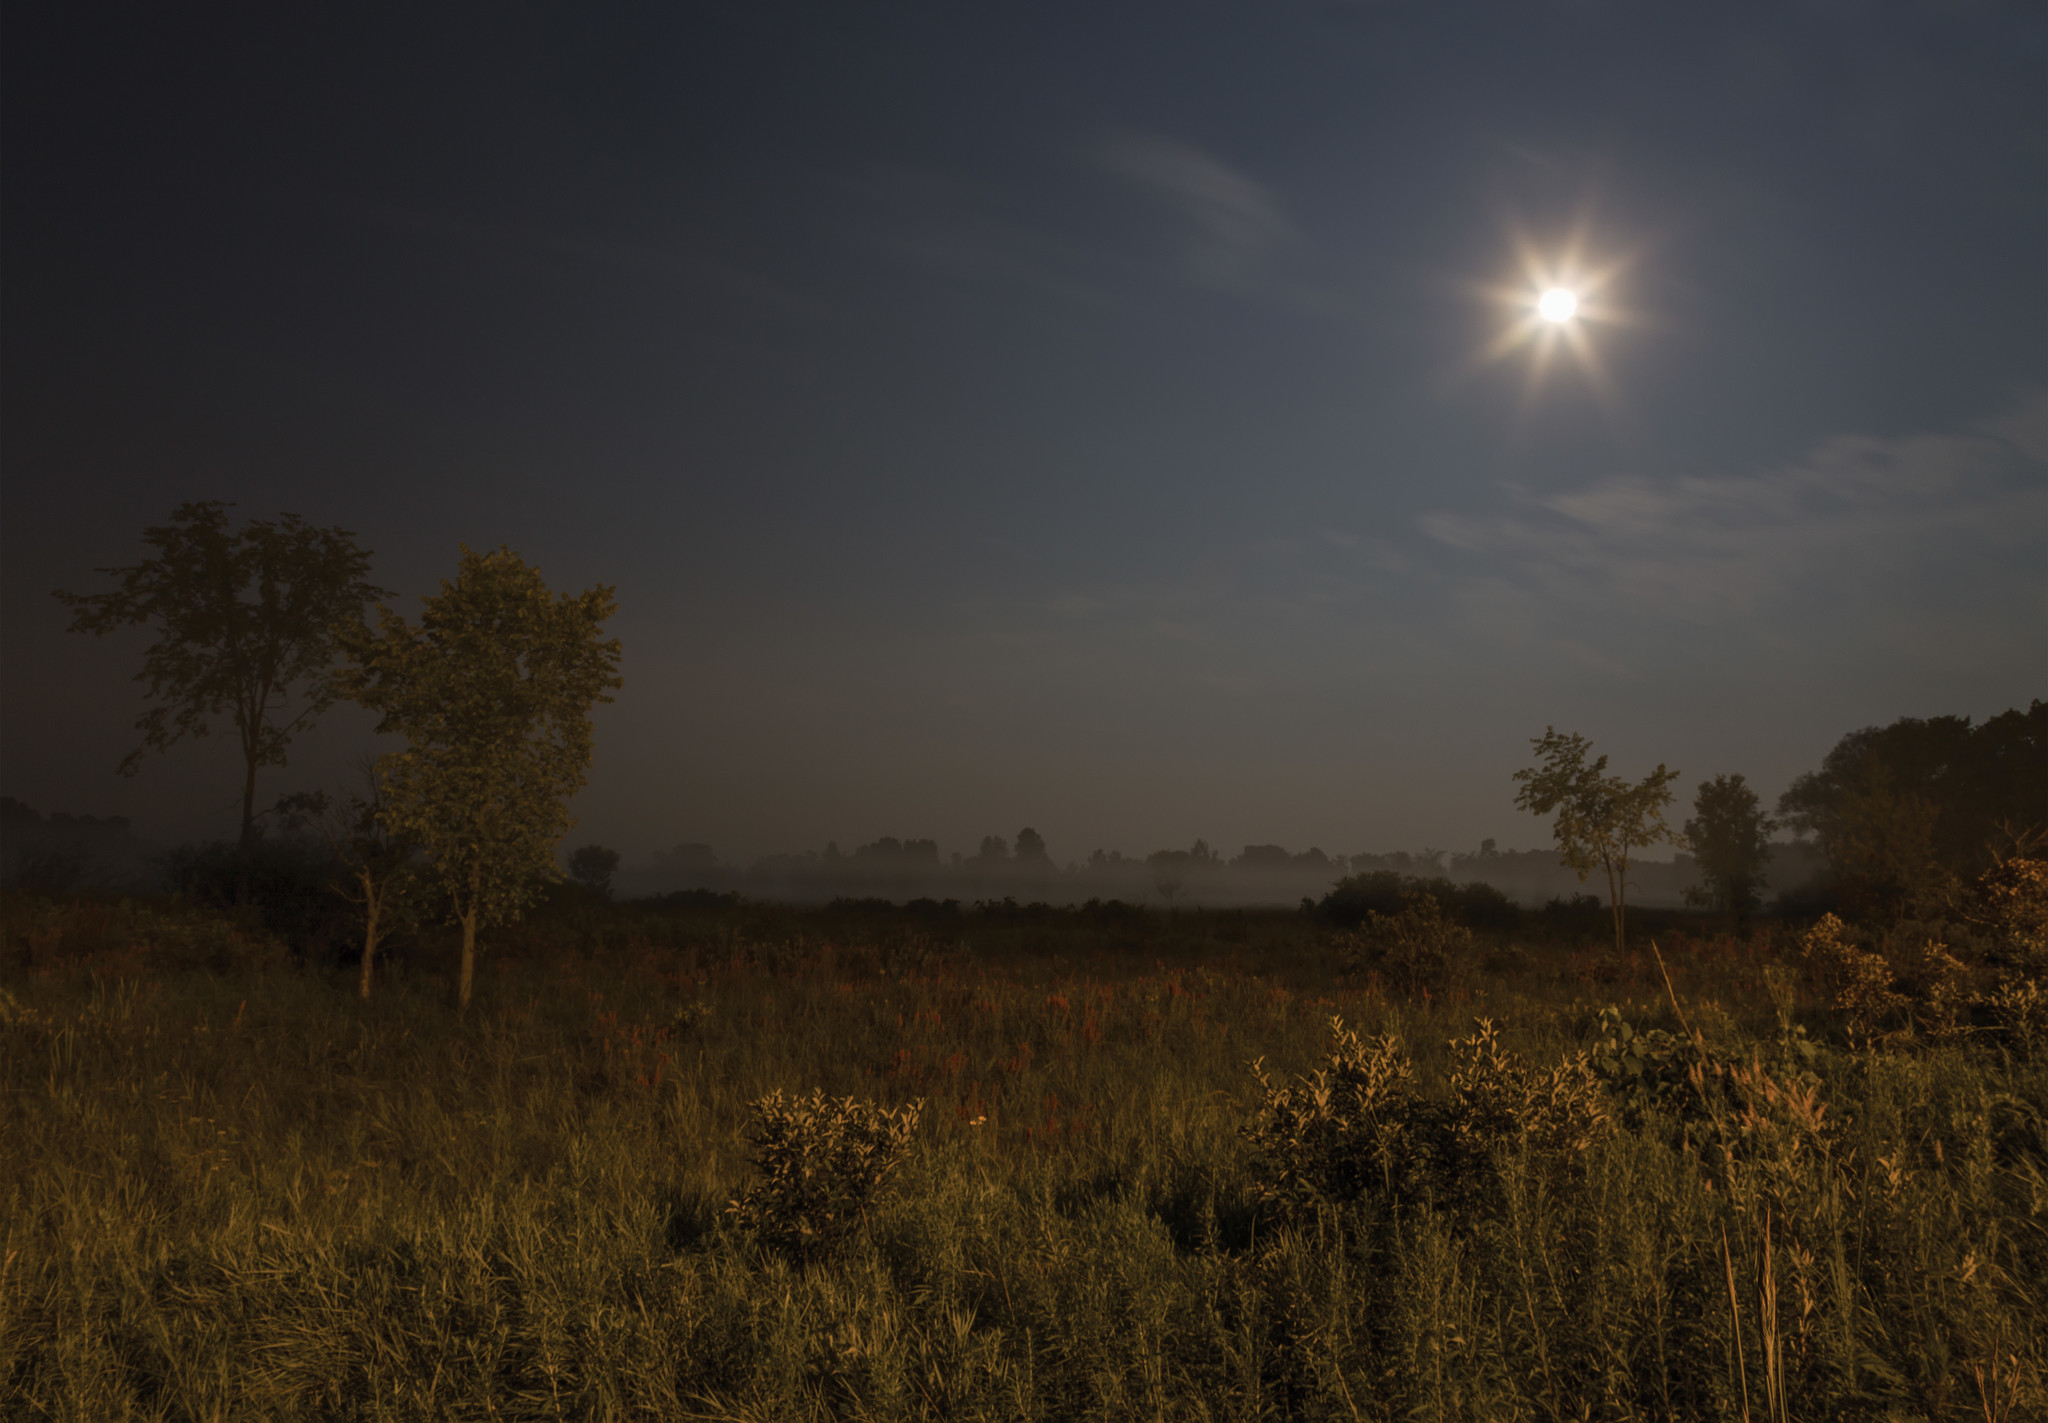 a powerful symbol of resistance the underground railroad inspires st clair county michigan from jeanine michna bales